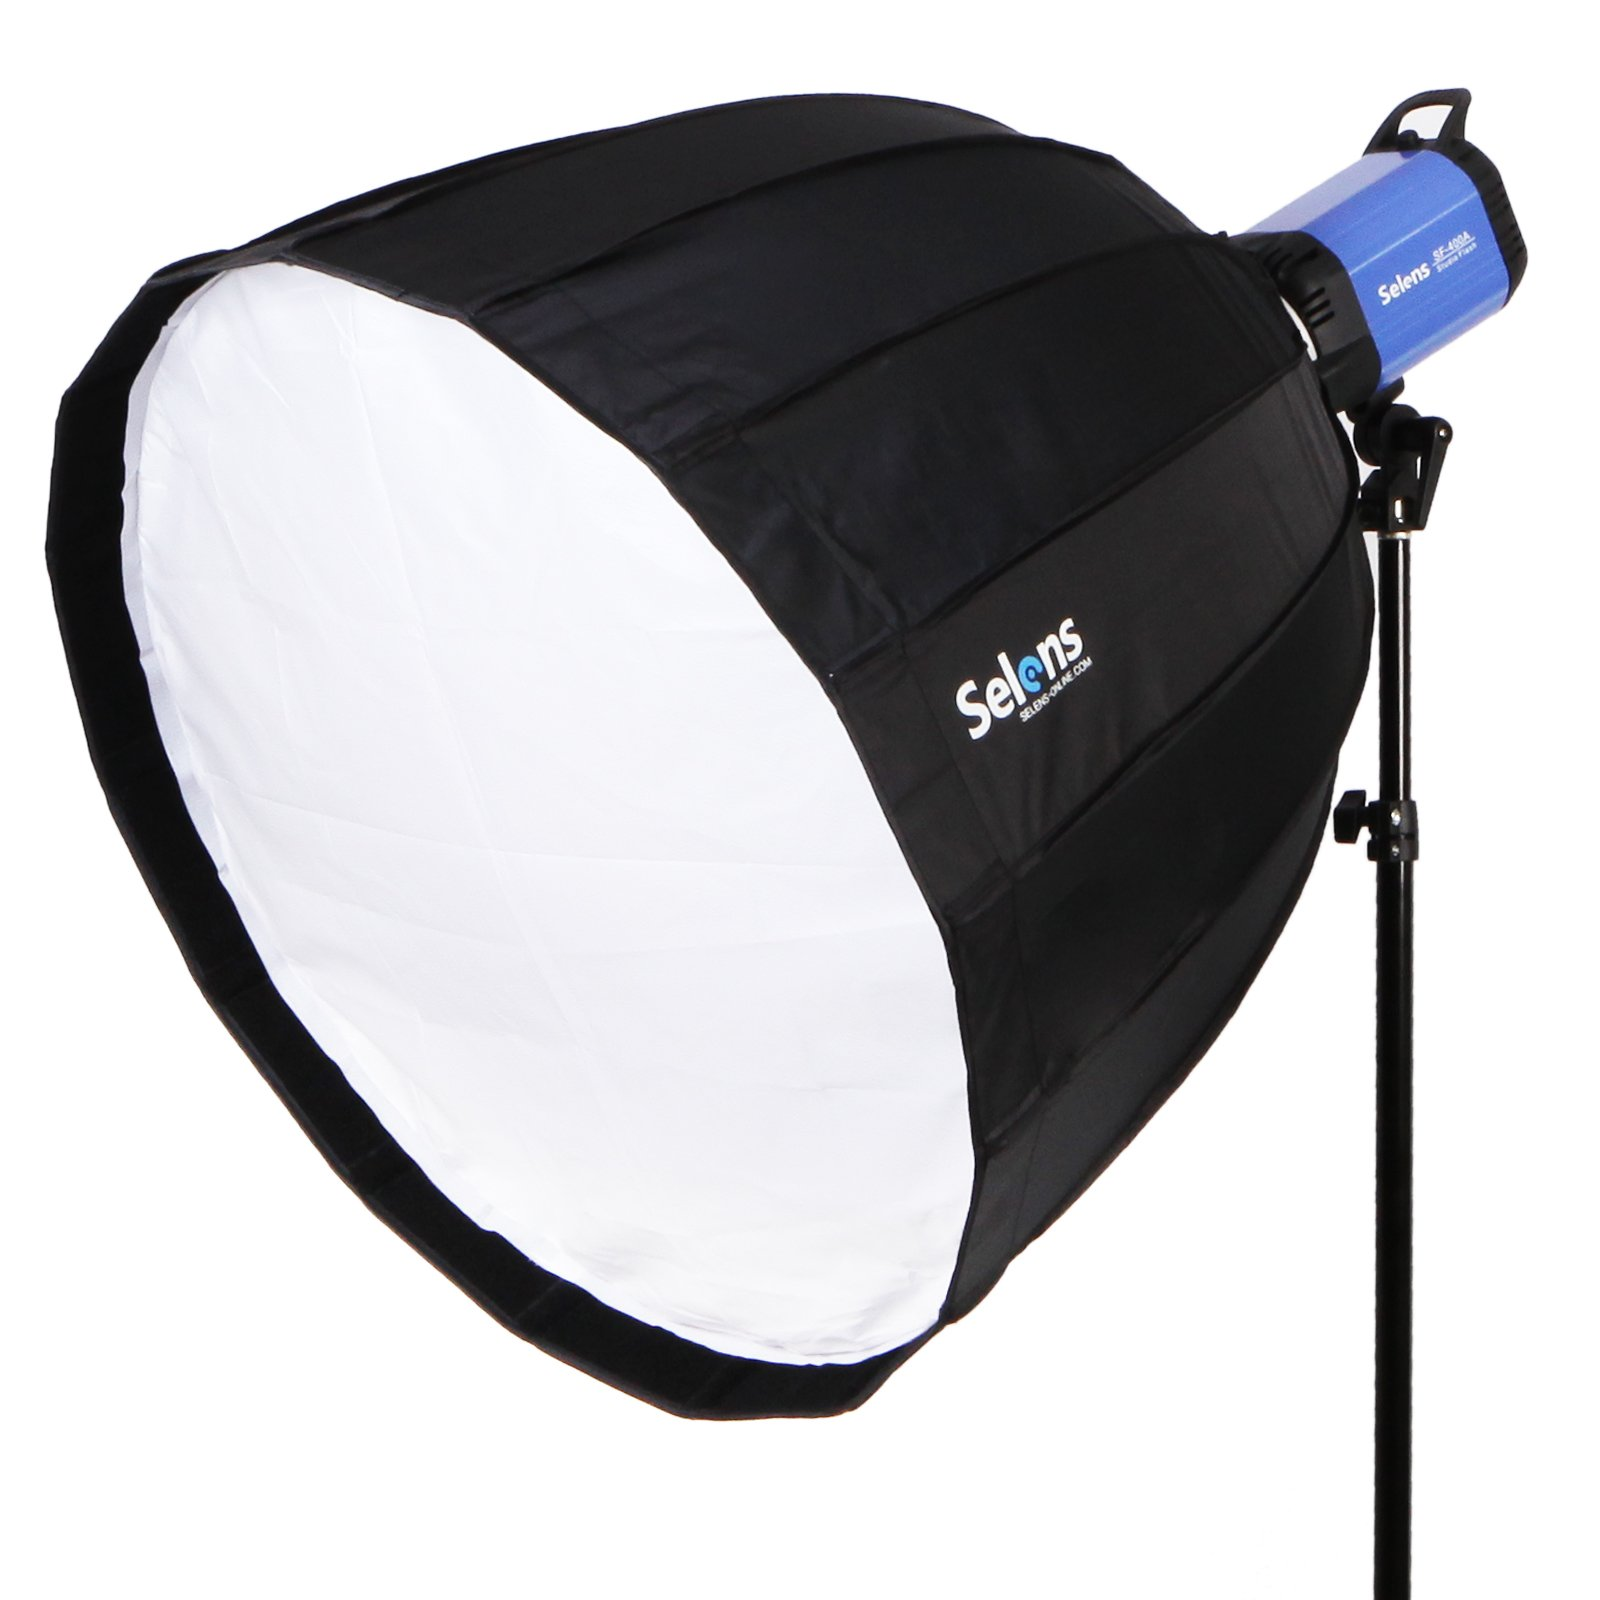 Selens Deep Parabolic Softbox 48 inches/120 Centimeters Hexadecagon Quick Folding Umbrella Softbox Diffuser with Bowens Speedring Mount for Photography Speedlites Flash Monolight and More by Selens